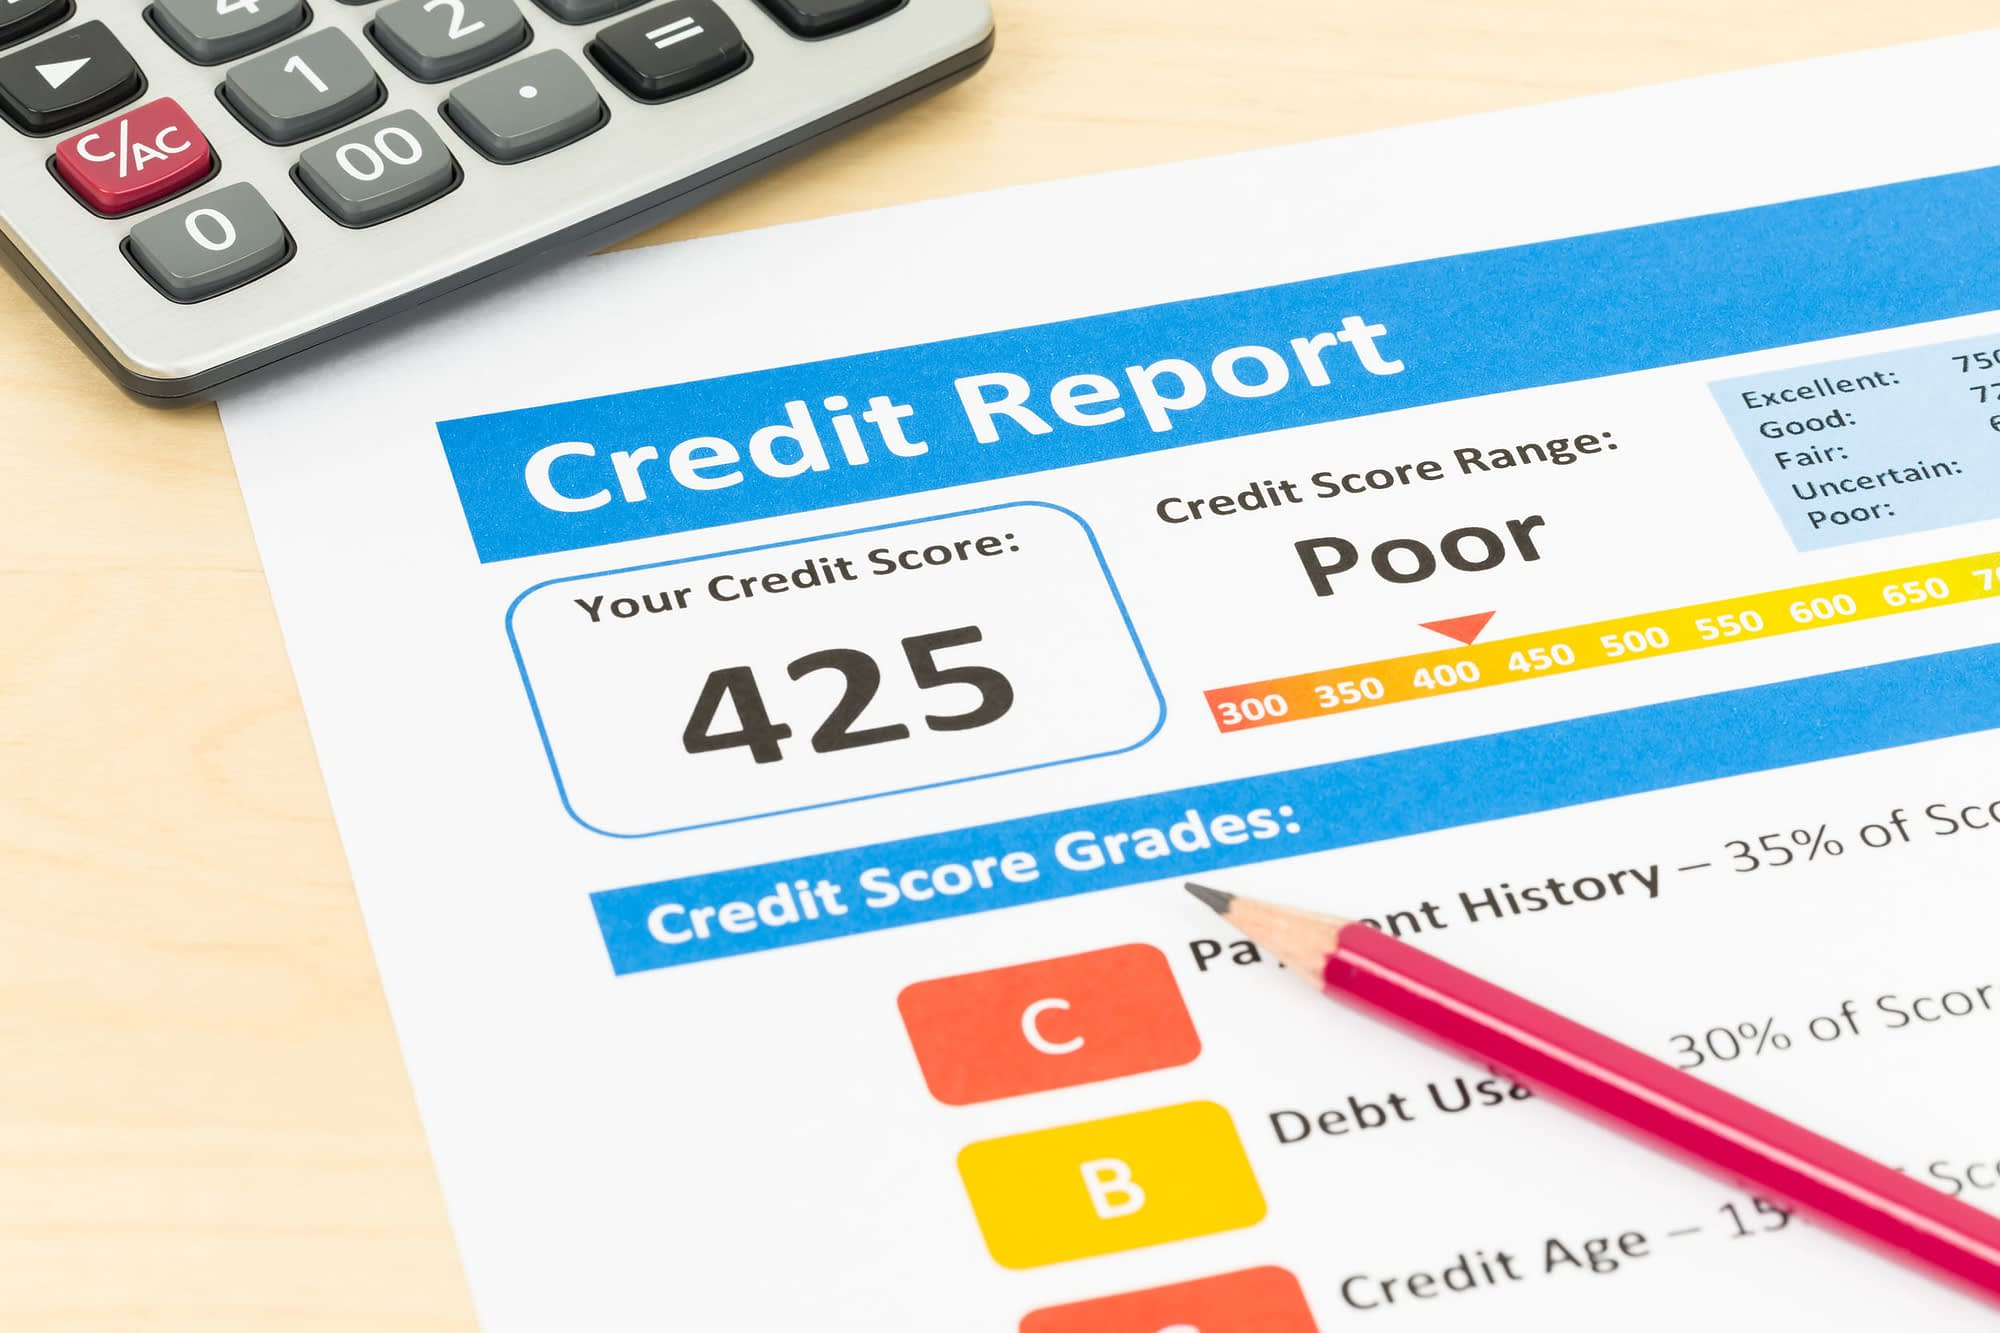 Poor credit score report with pen and calculator